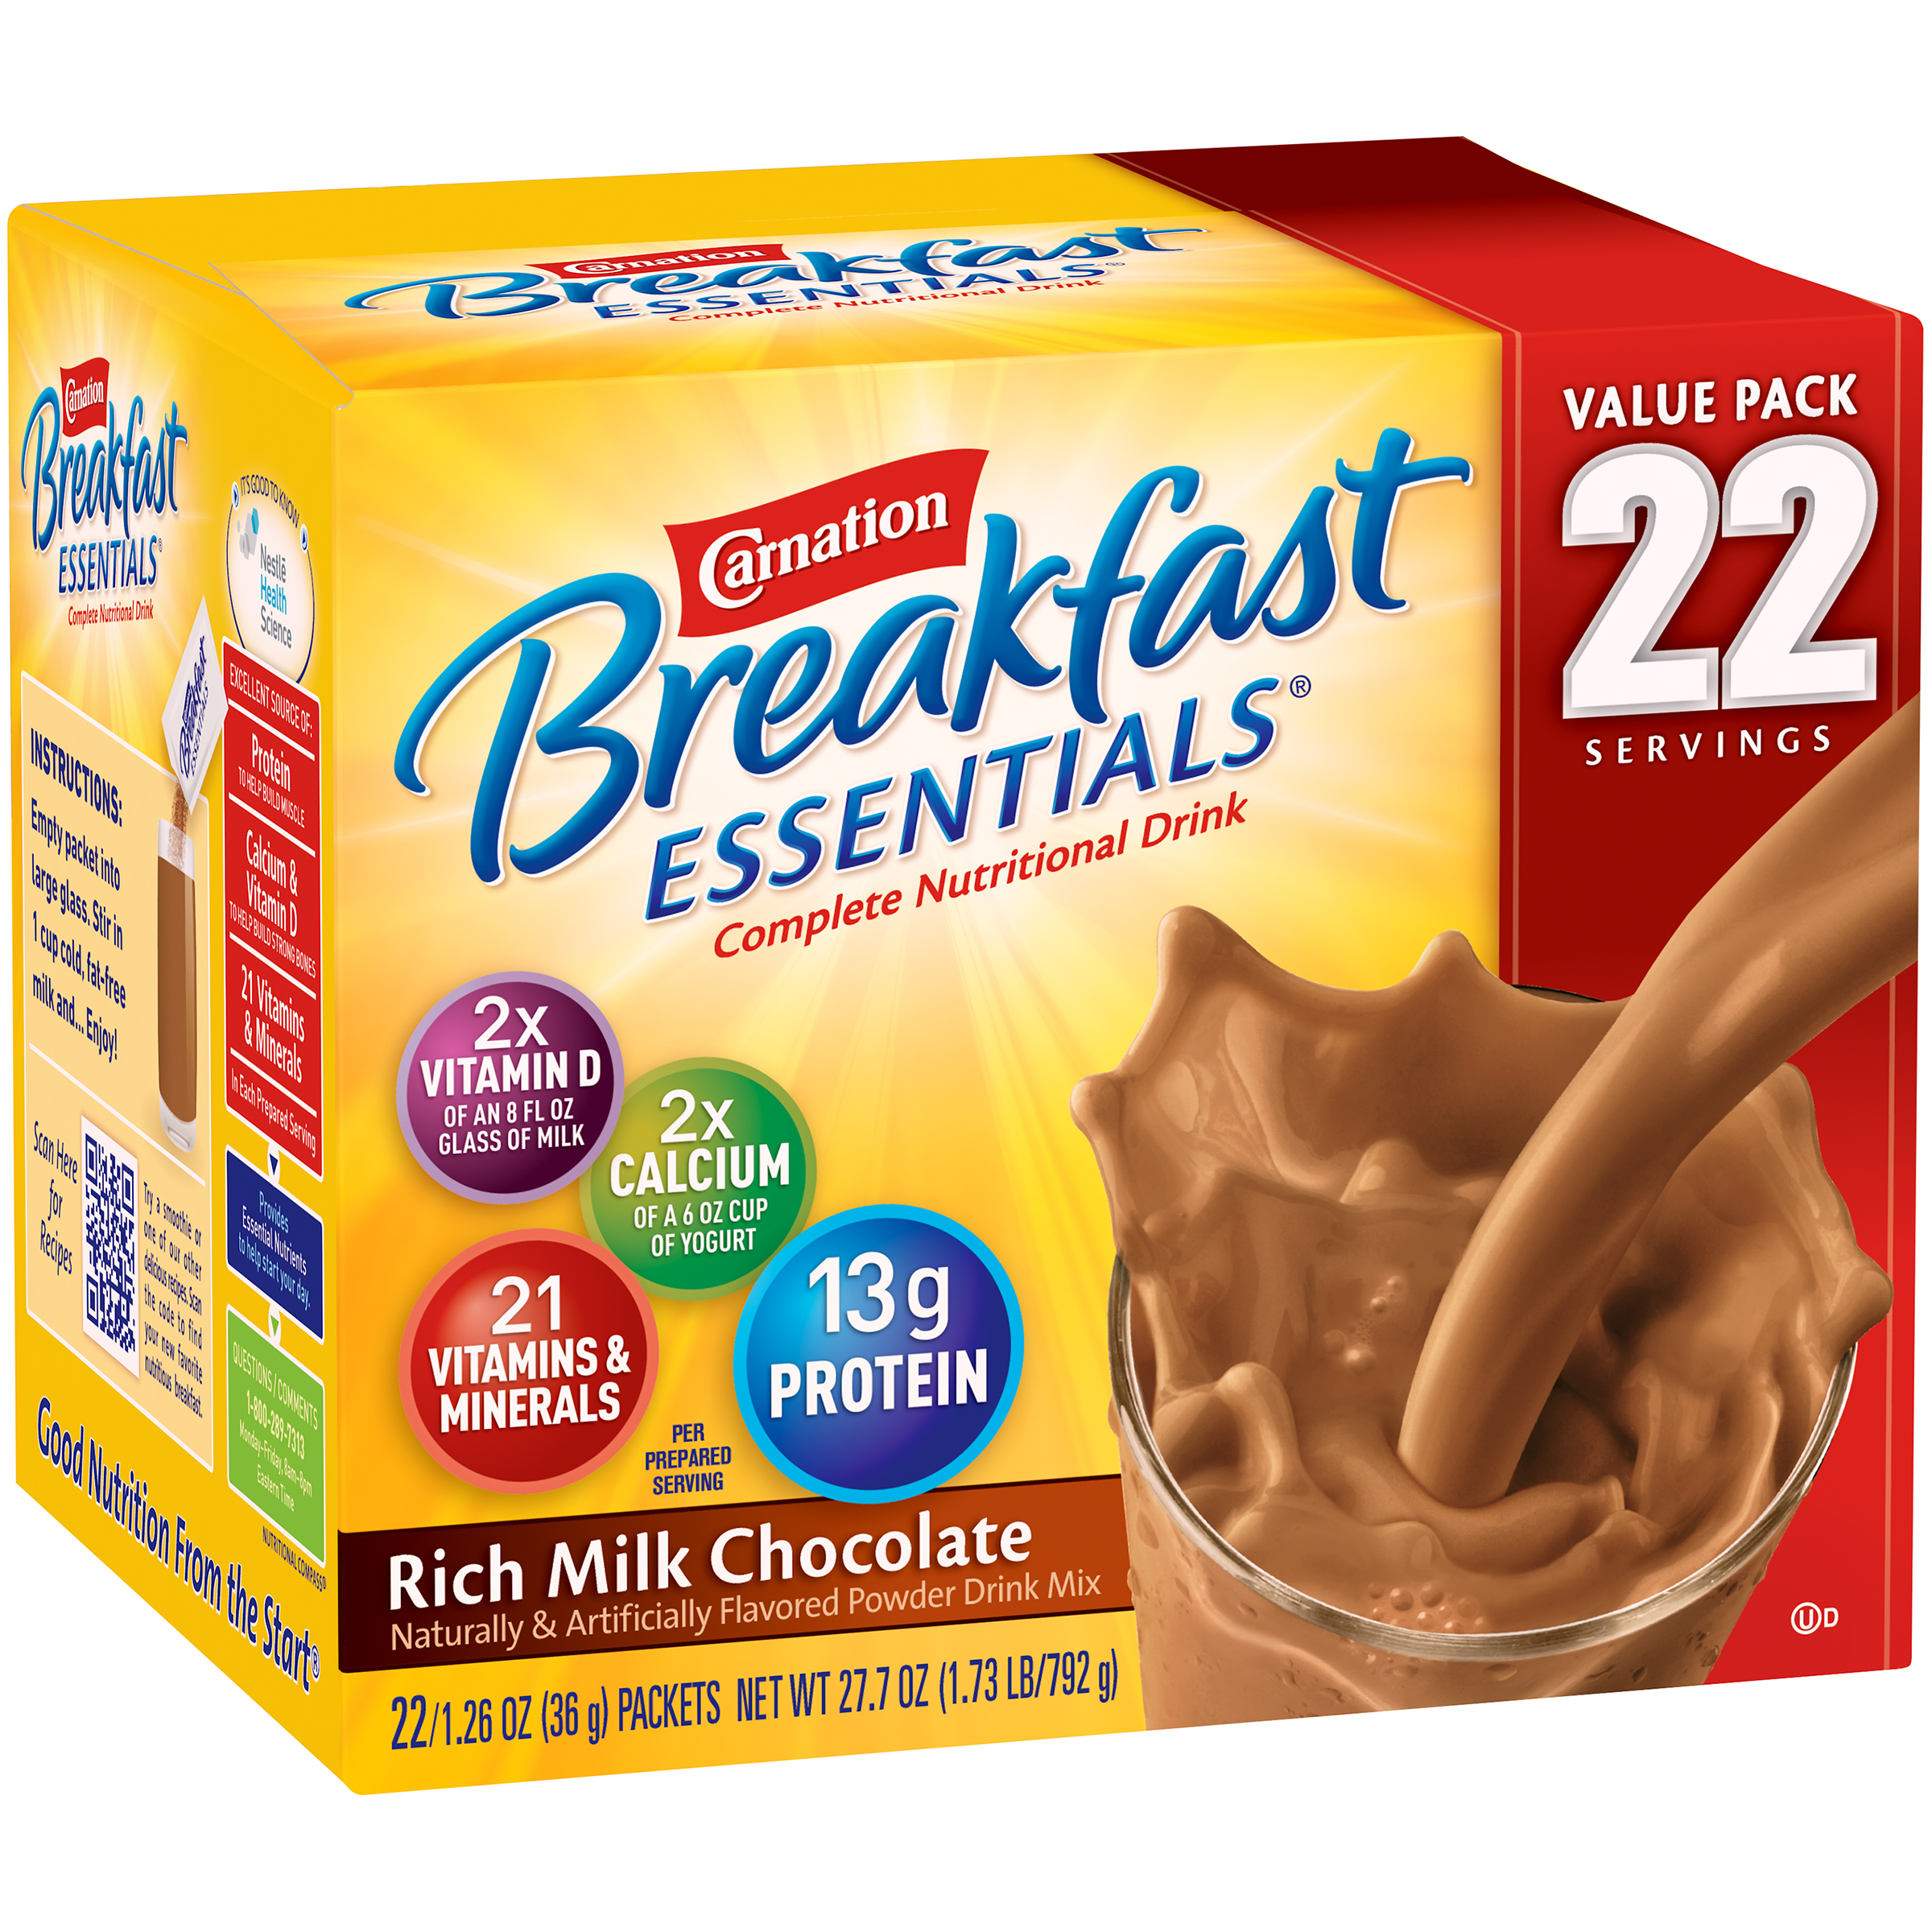 Carnation Breakfast Essentials�� Rich Milk Chocolate Complete Nutritional Drink Mix, 1.26 oz, 22 count